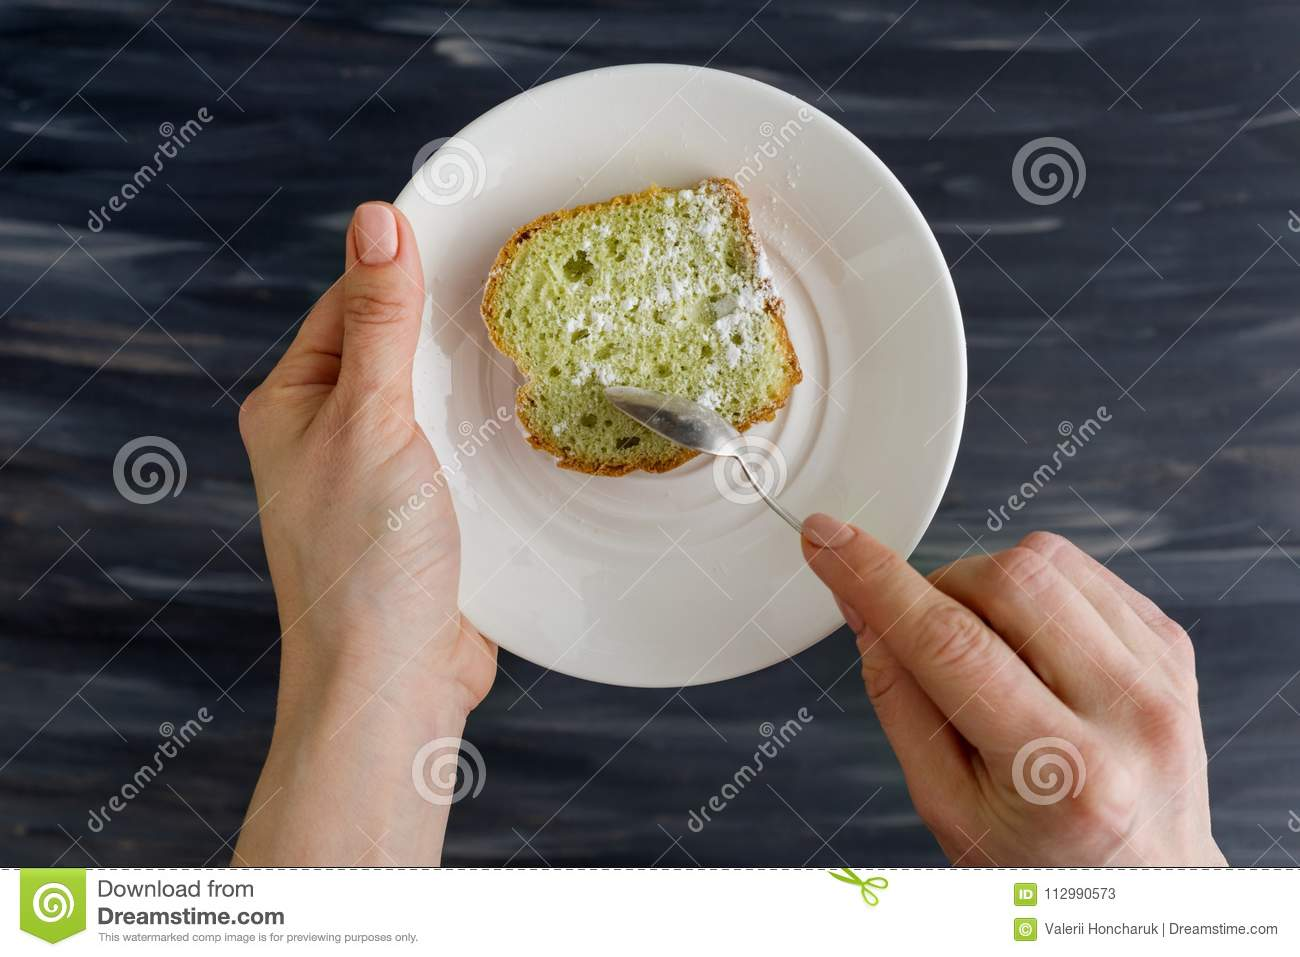 Mint cake on plate in hands, background dark surface